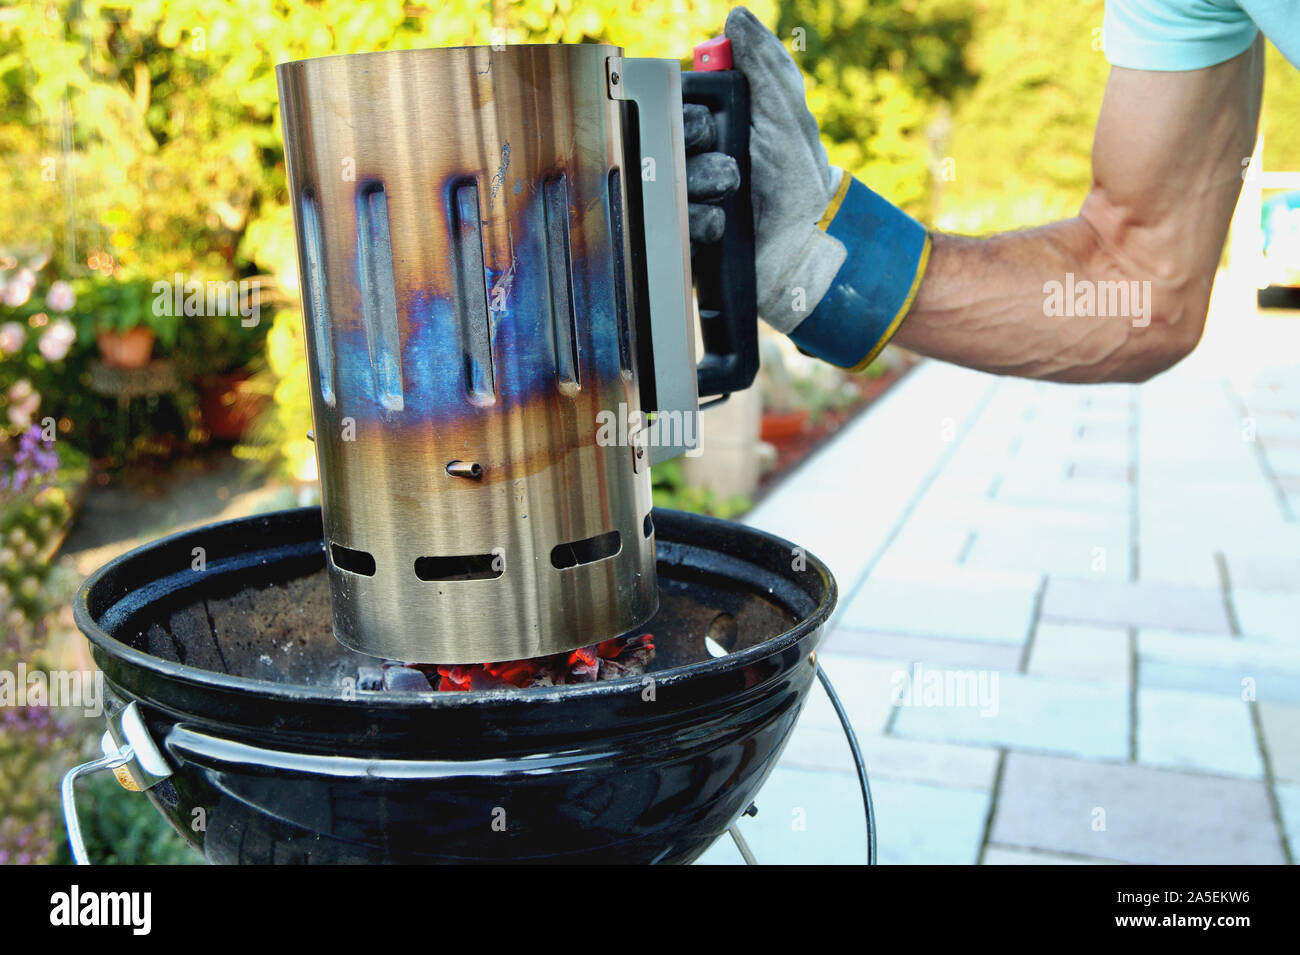 https www alamy com kindling coals male hand holding the chimney and lighting it using coal chimney starter lighting the flame on the grill grate terrace and garden image330393202 html